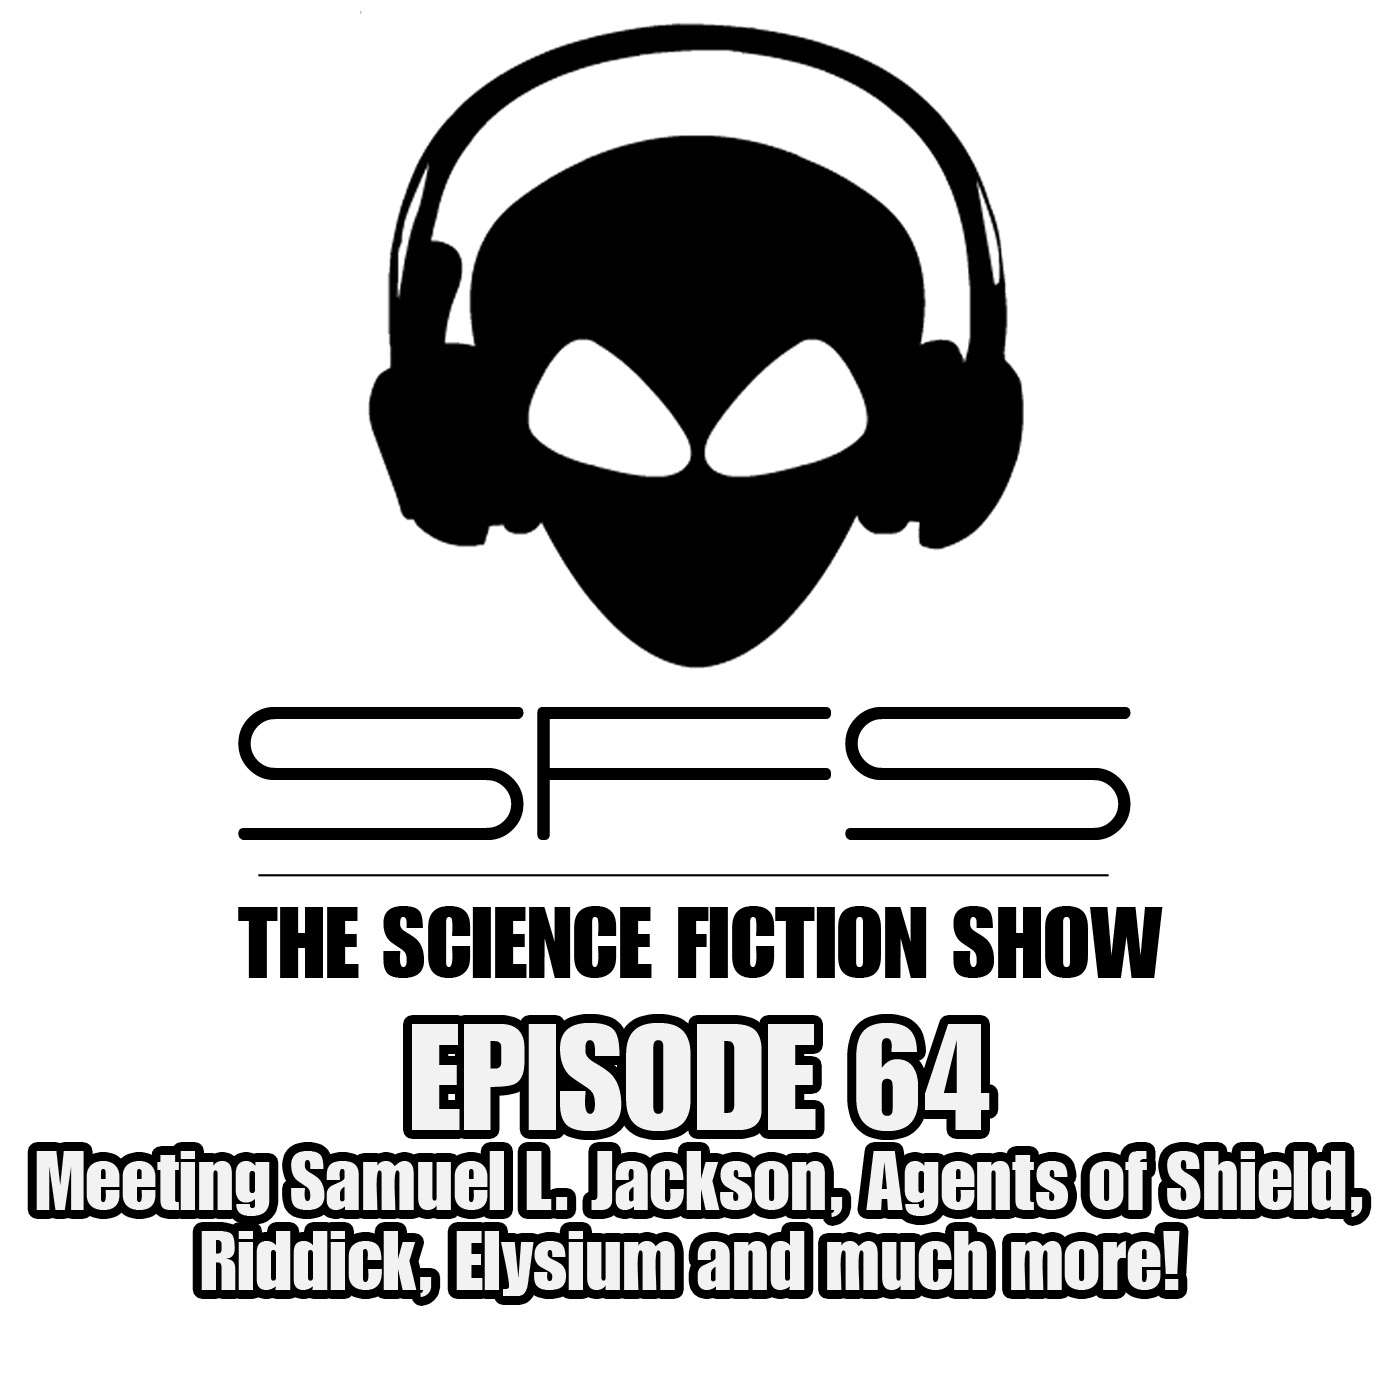 Episode 64: Meeting Samuel L. Jackson & Agents of SHIELD review